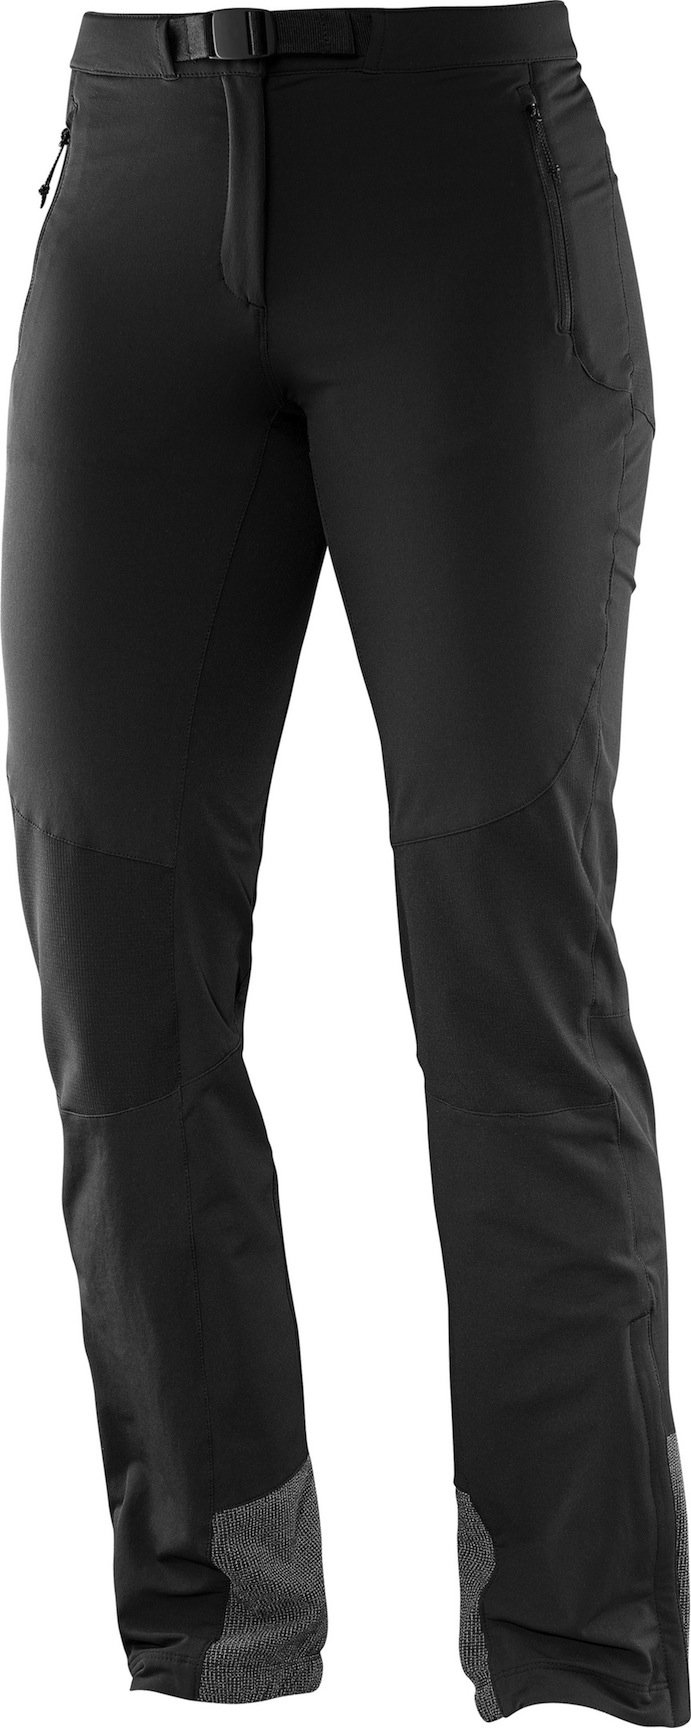 airFreshing_2016_Salomon_Sommerkollektion_Hiking_Wanderhose_Women_wayfarer_mountainpant_black